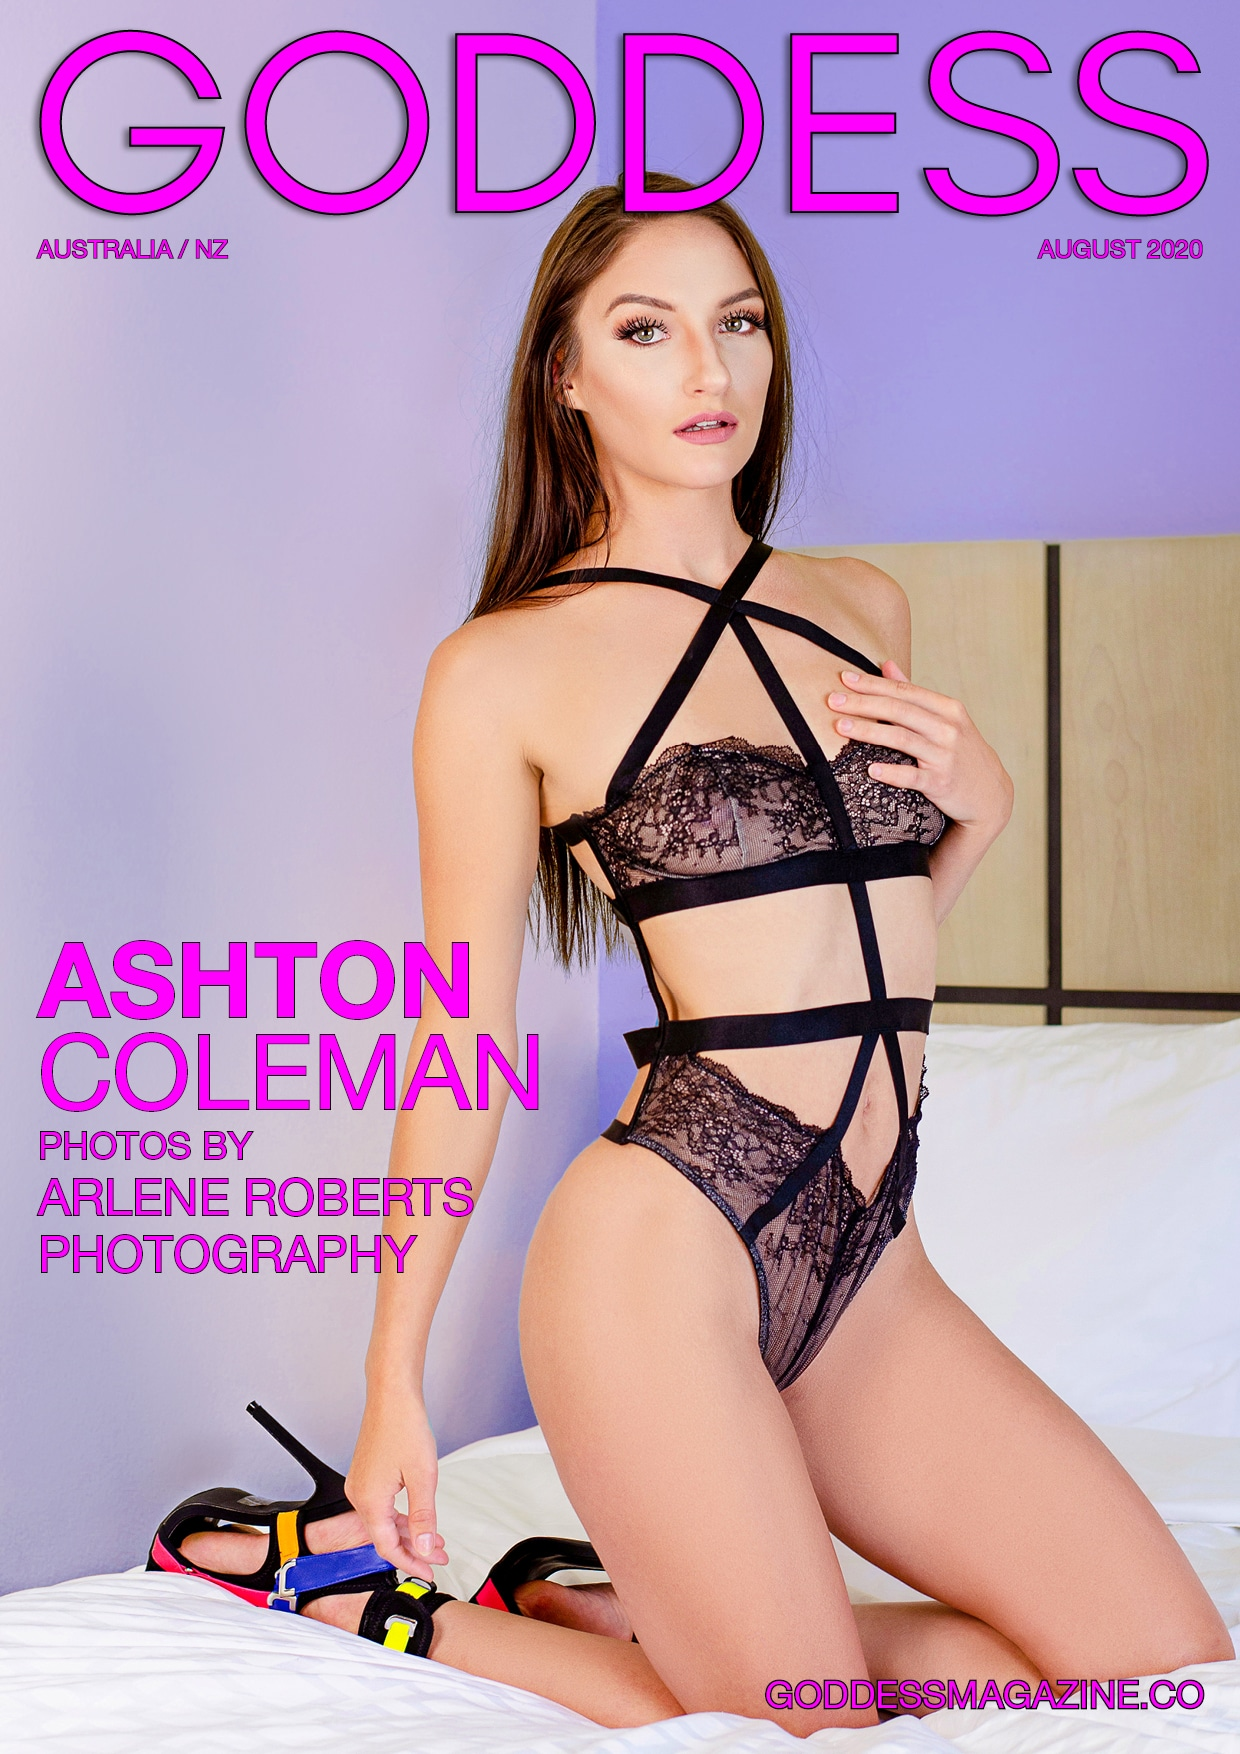 Goddess Magazine - August 2020 - Ashton Coleman 1